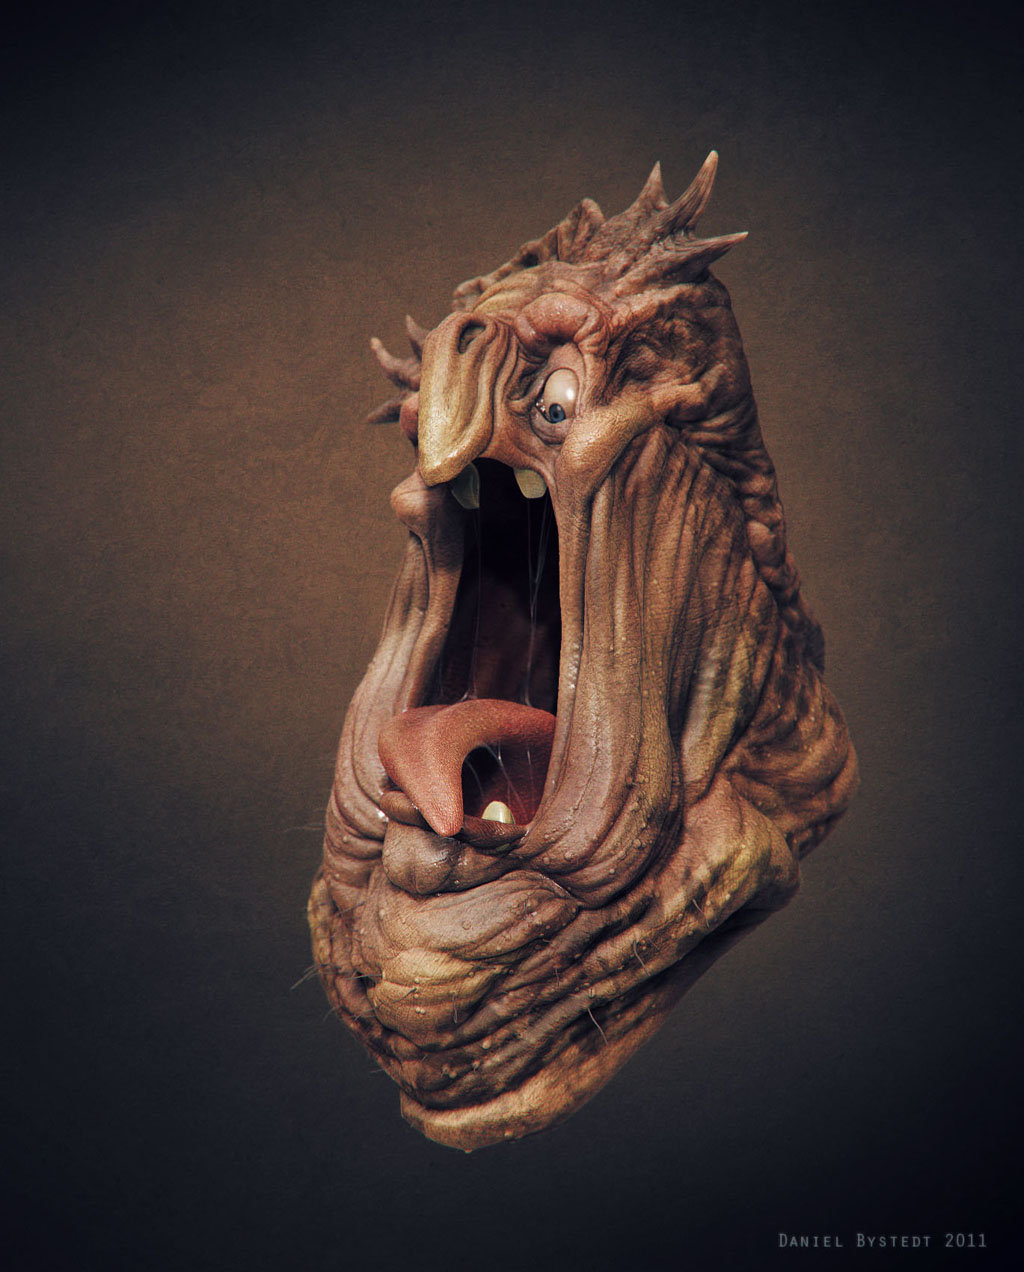 Daniel bystedt mouth monster 2